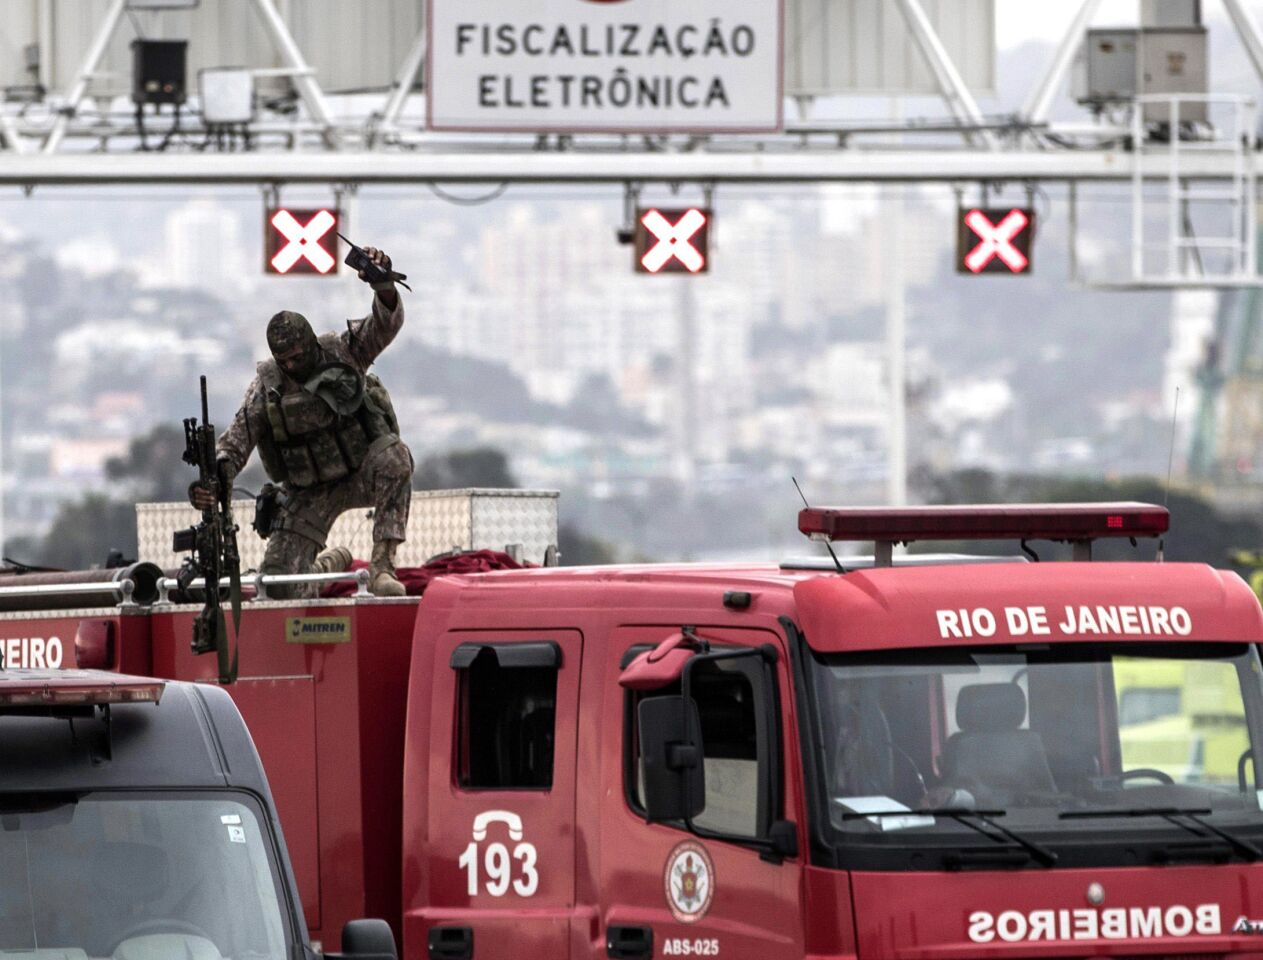 A police sniper celebrates after fatally shooting a hijacker who was threatening passengers on a bus in Rio de Janeiro on Tuesday. An armed man hijacked a bus and kept passengers and the driver as hostages while he threatened to burn the vehicle with gas.